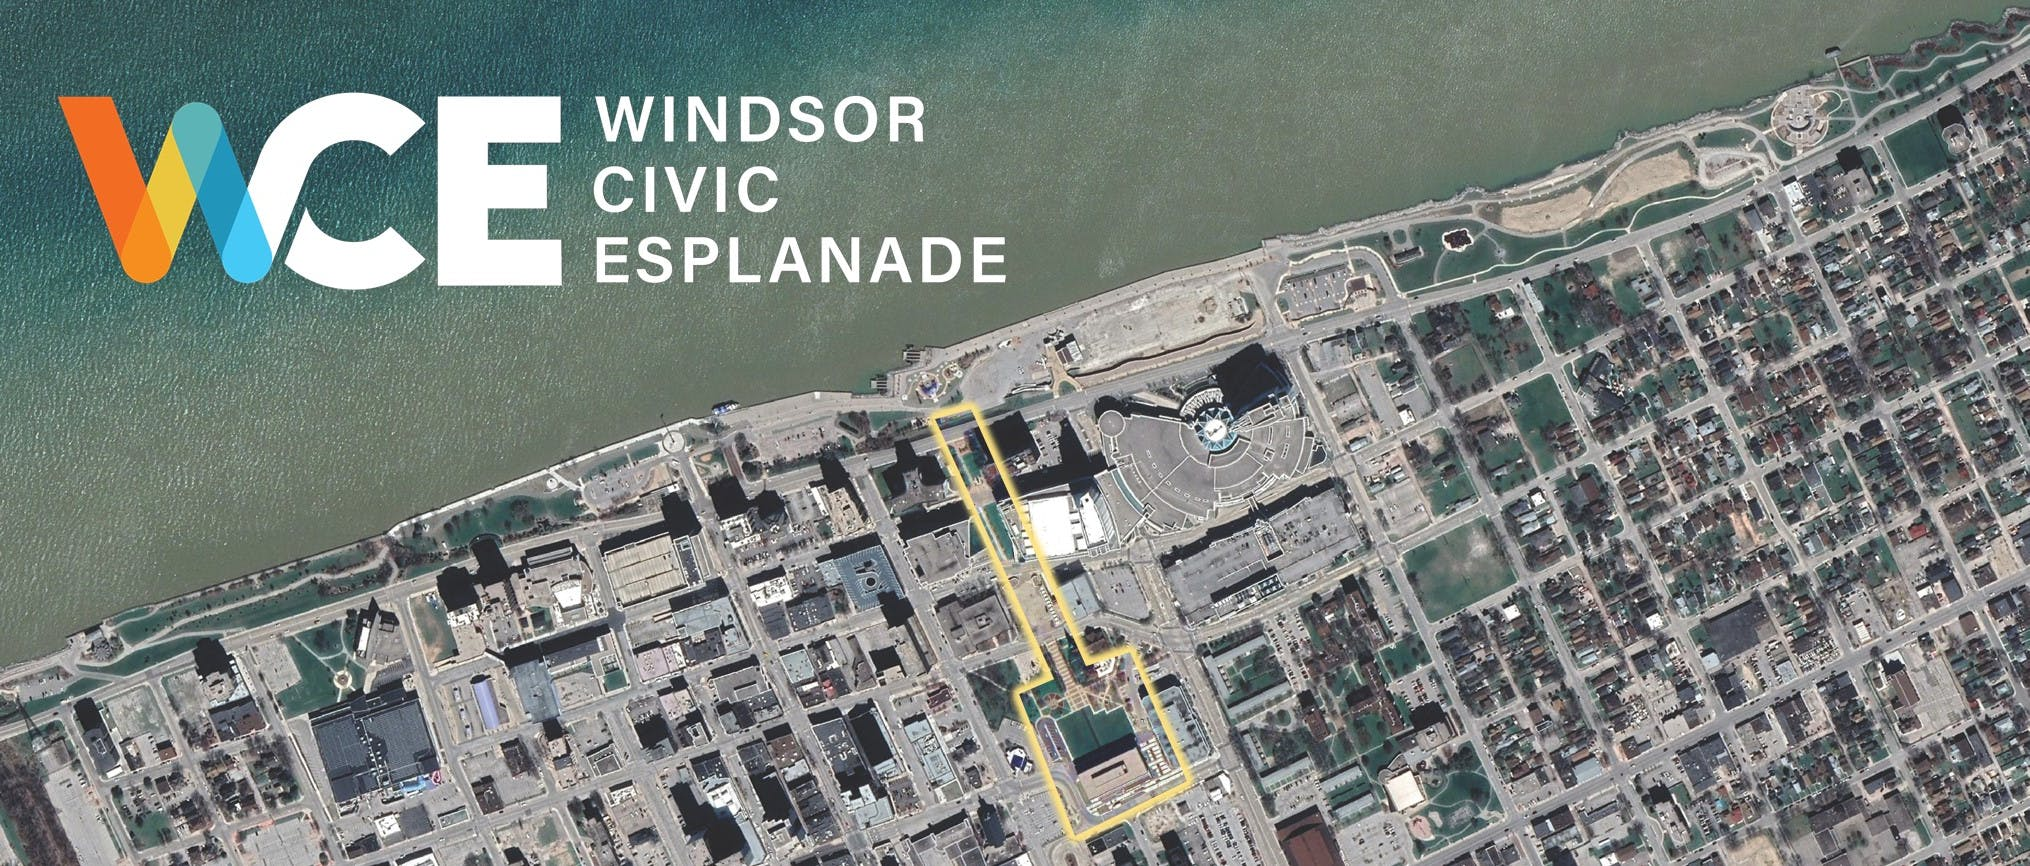 City of Windsor Map of Project Location